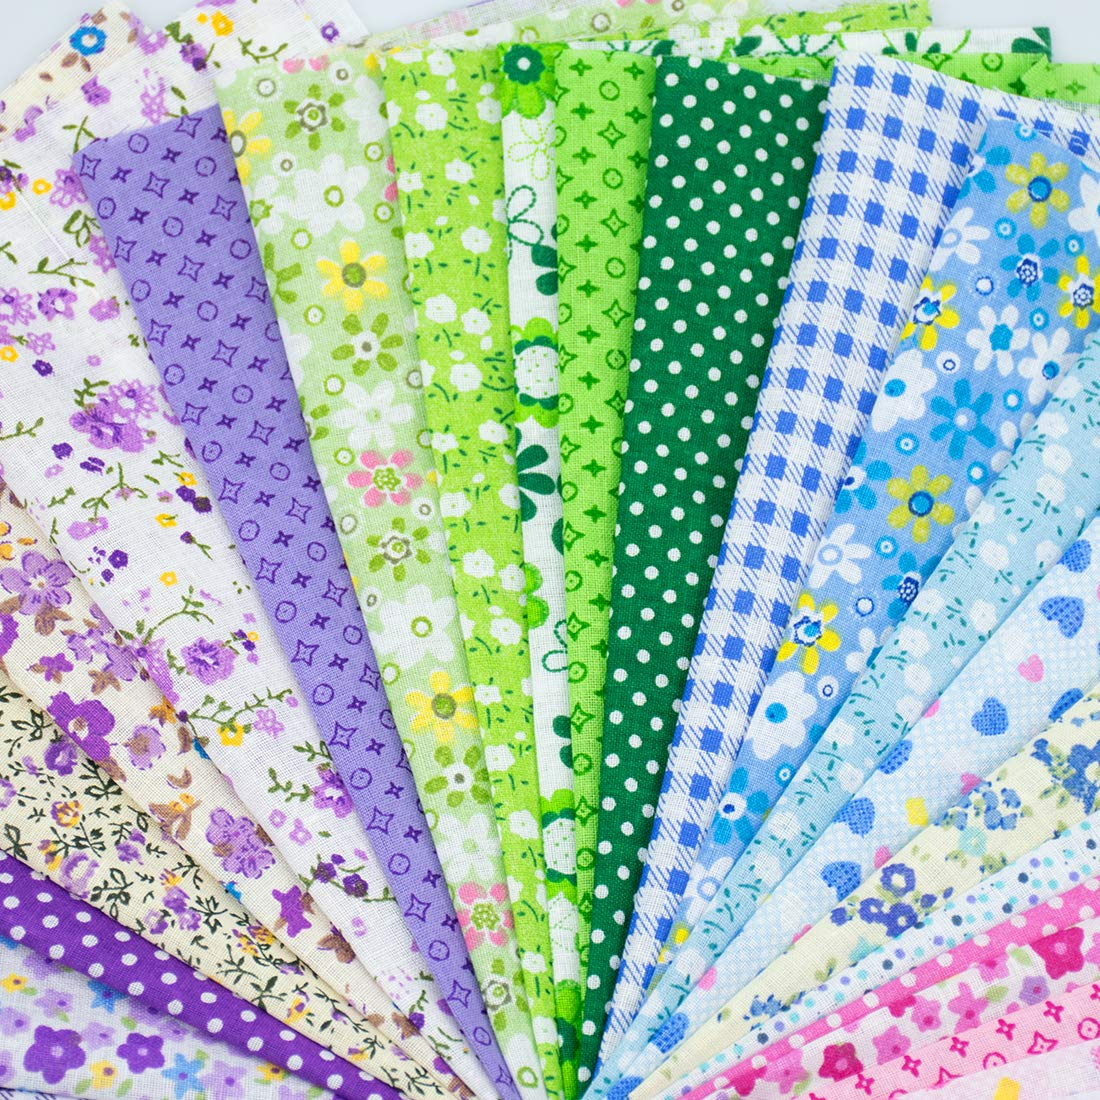 Foraineam 60 PCS Different Designs9.8'' x 9.8'' (25cm x 25cm) Cotton Craft Fabric Bundle Printed Patchwork Squares for DIY Sewing Quilting Scrapbooking by Foraineam (Image #5)